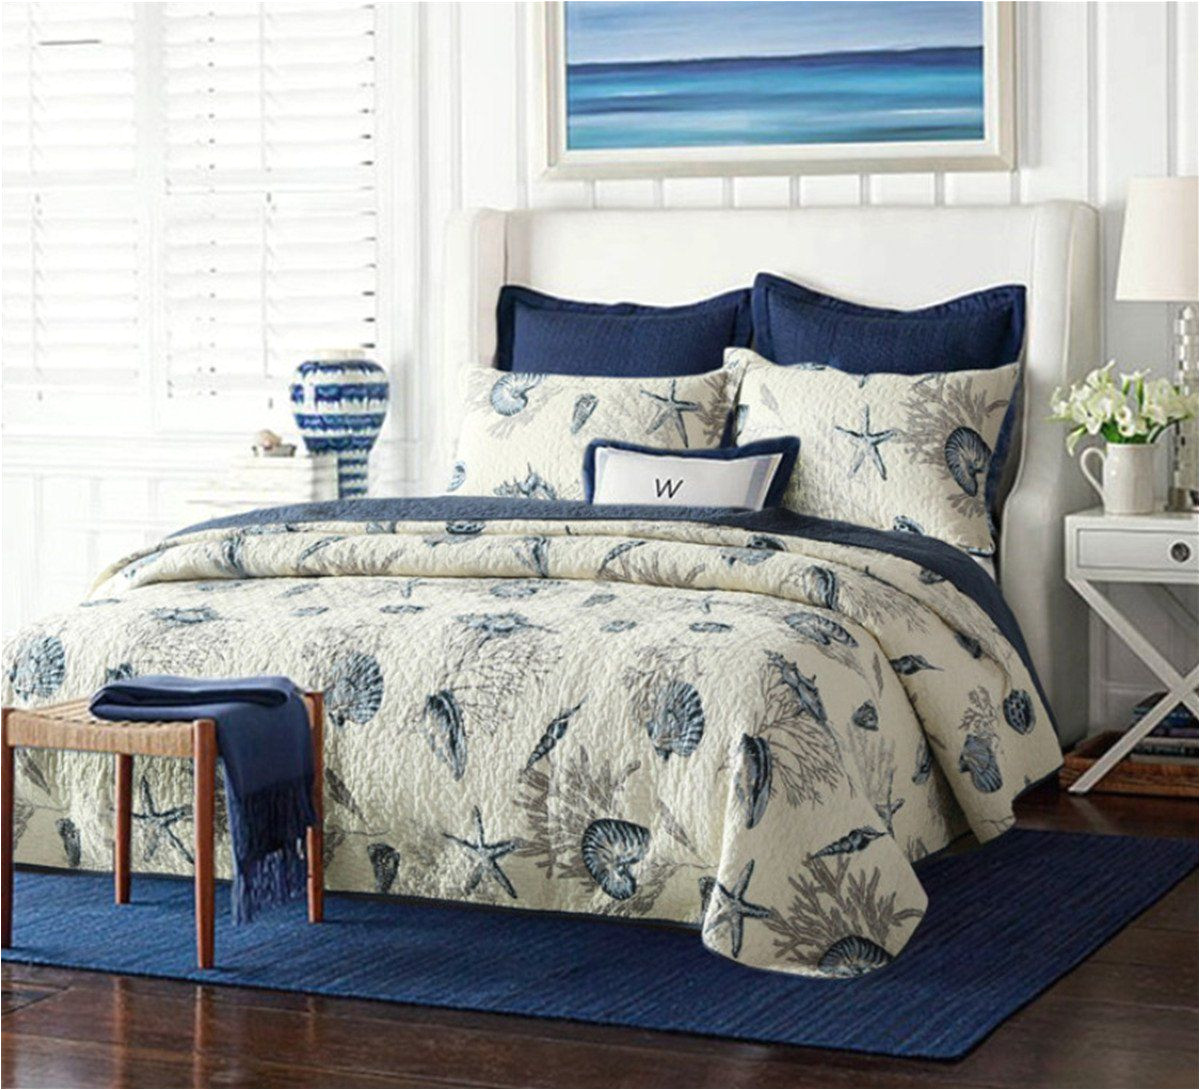 nautical queen quilt set 1 reversible bedspread and 2 pillowcases 100 cotton comfy navy